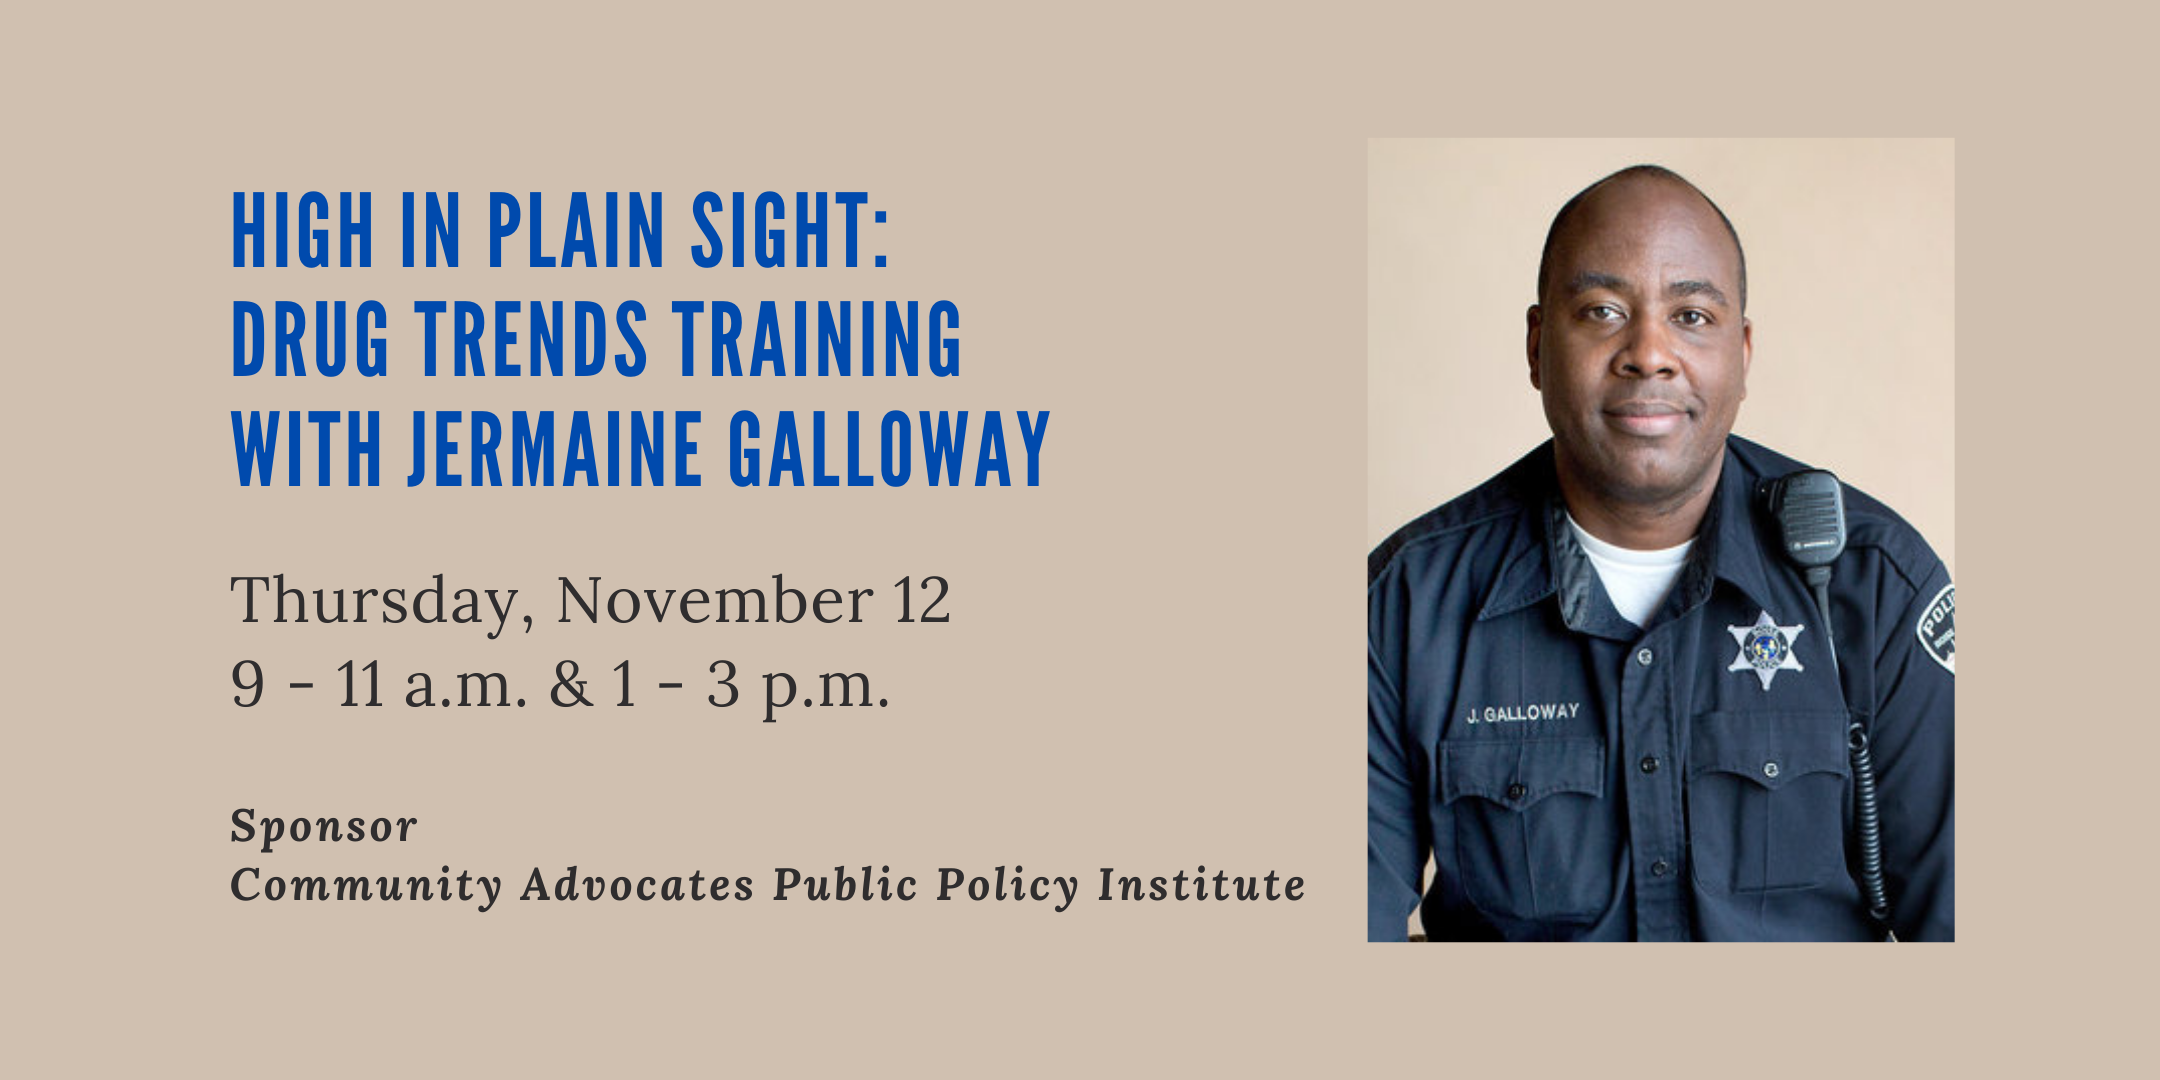 High in Plain Sight: Drug Trends Training with Jermaine Galloway